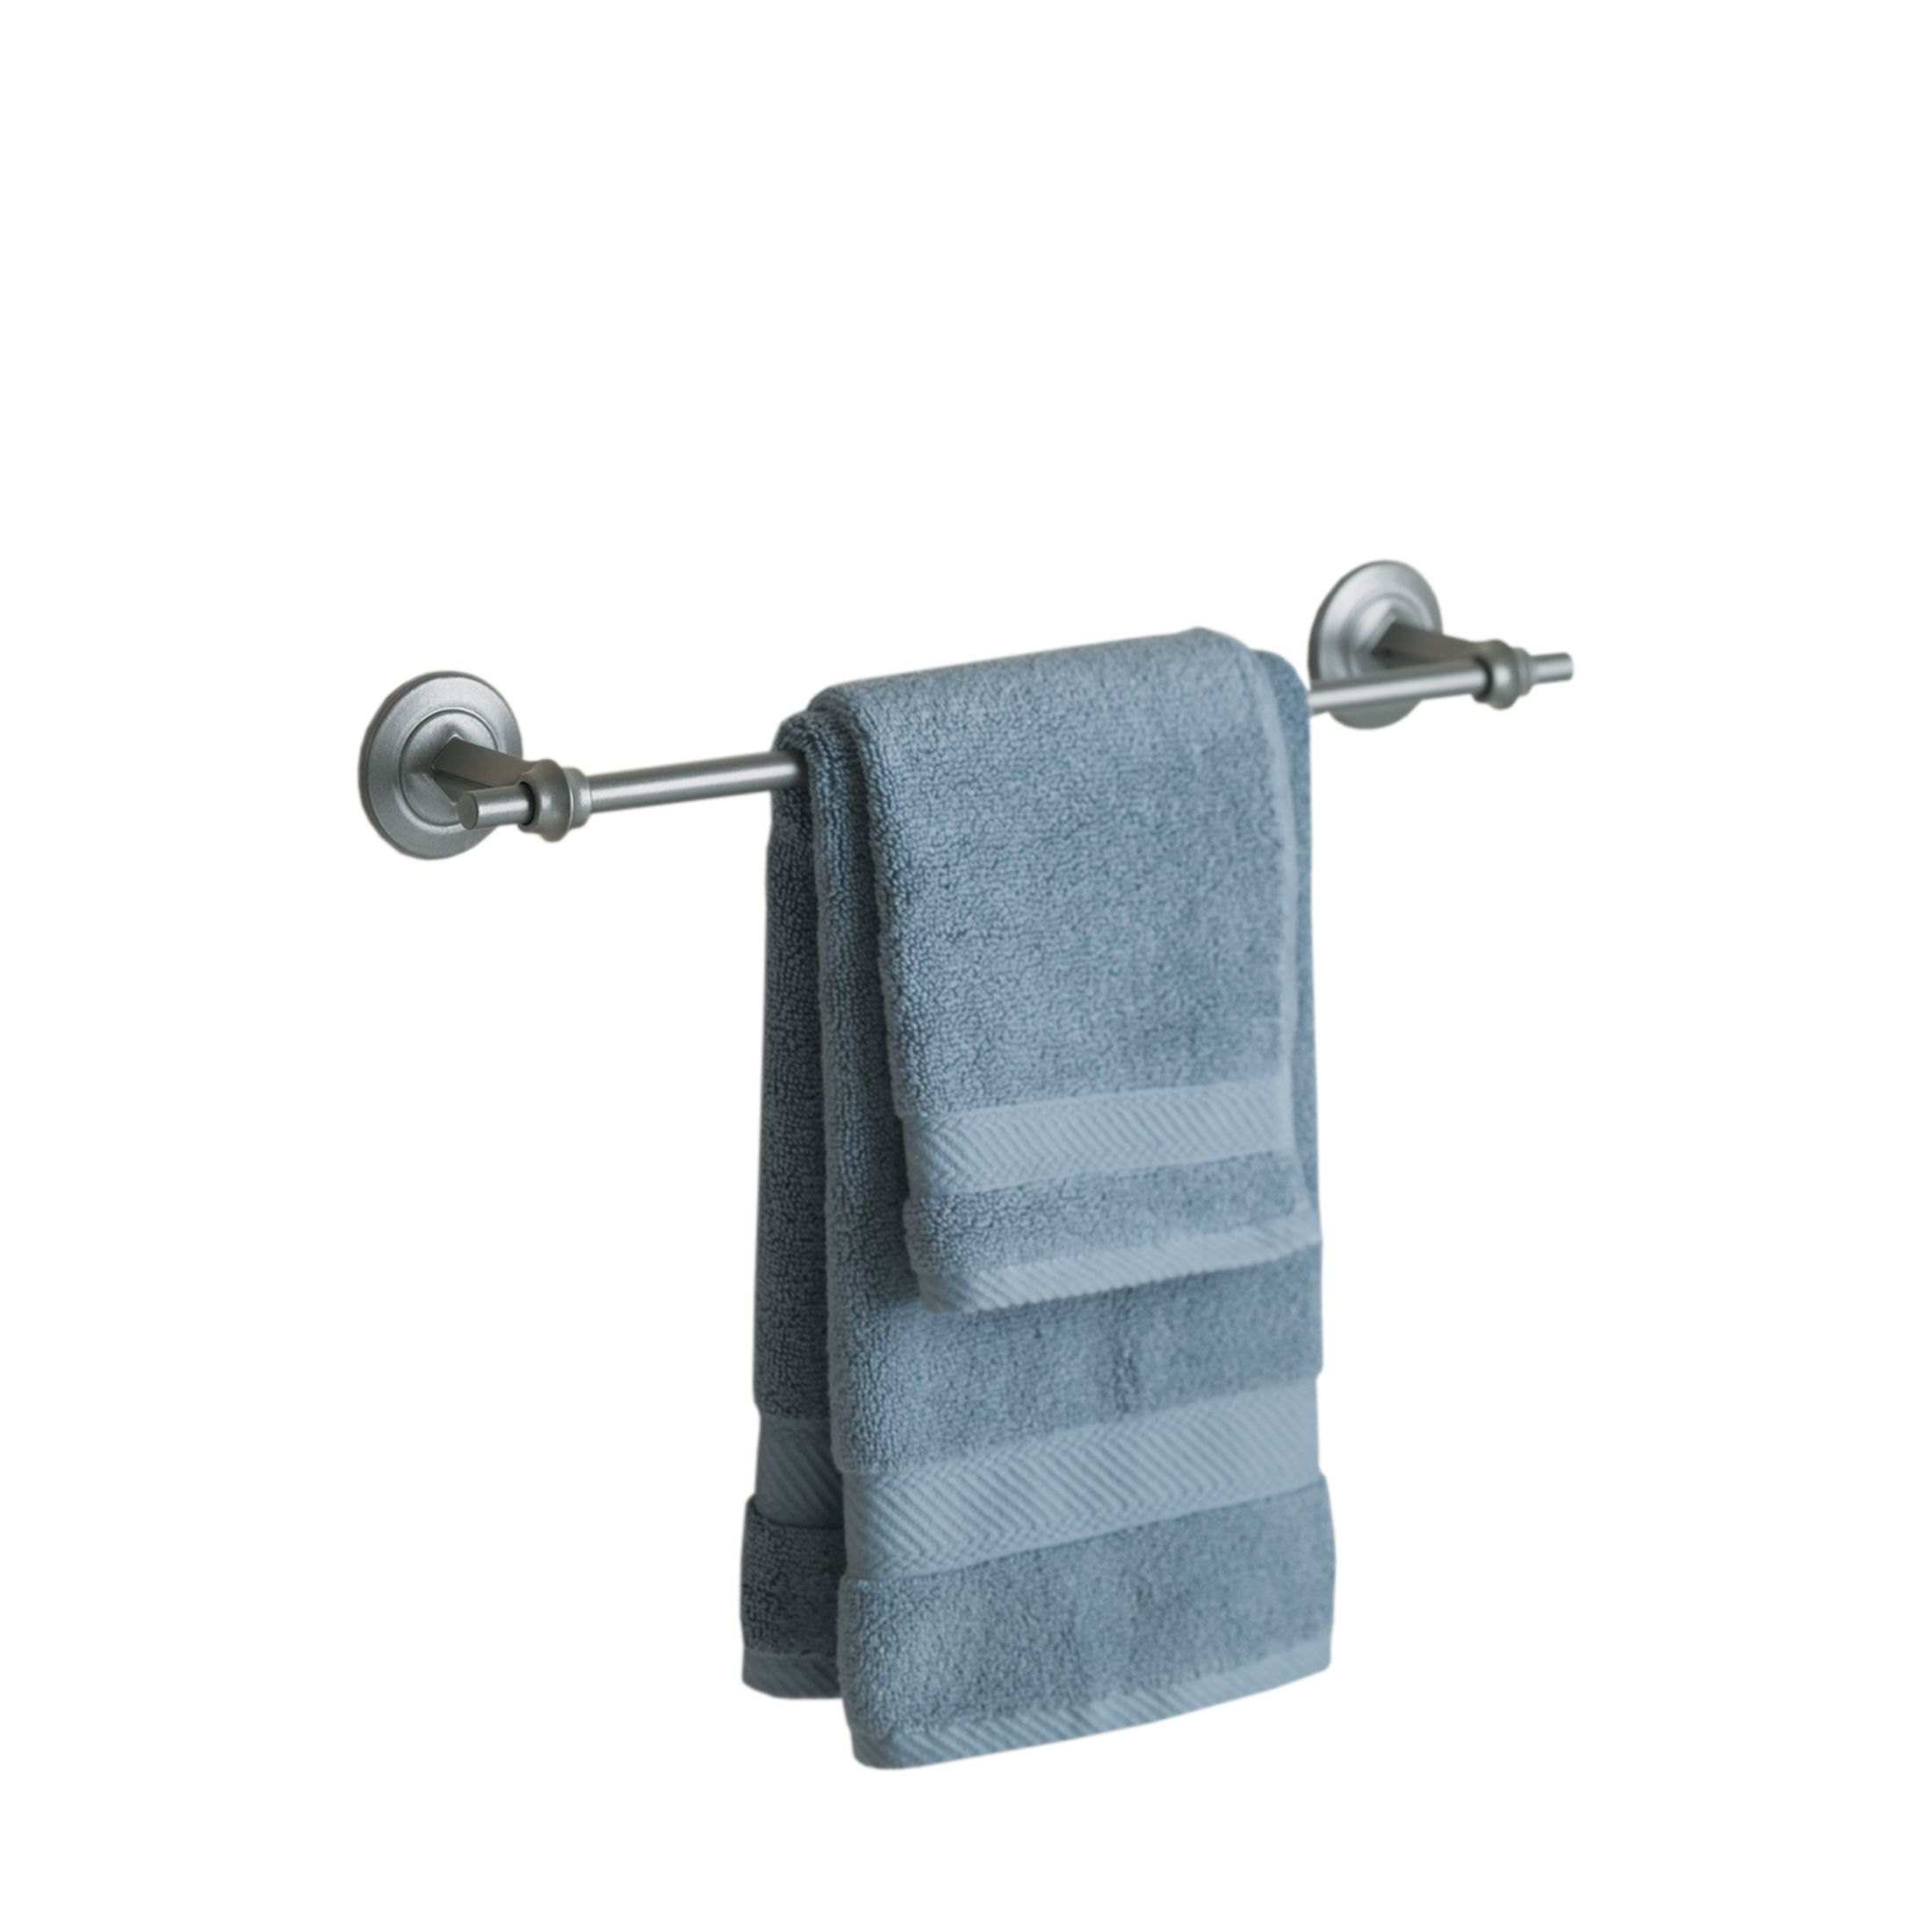 Thumbnail for Rook Towel Holder